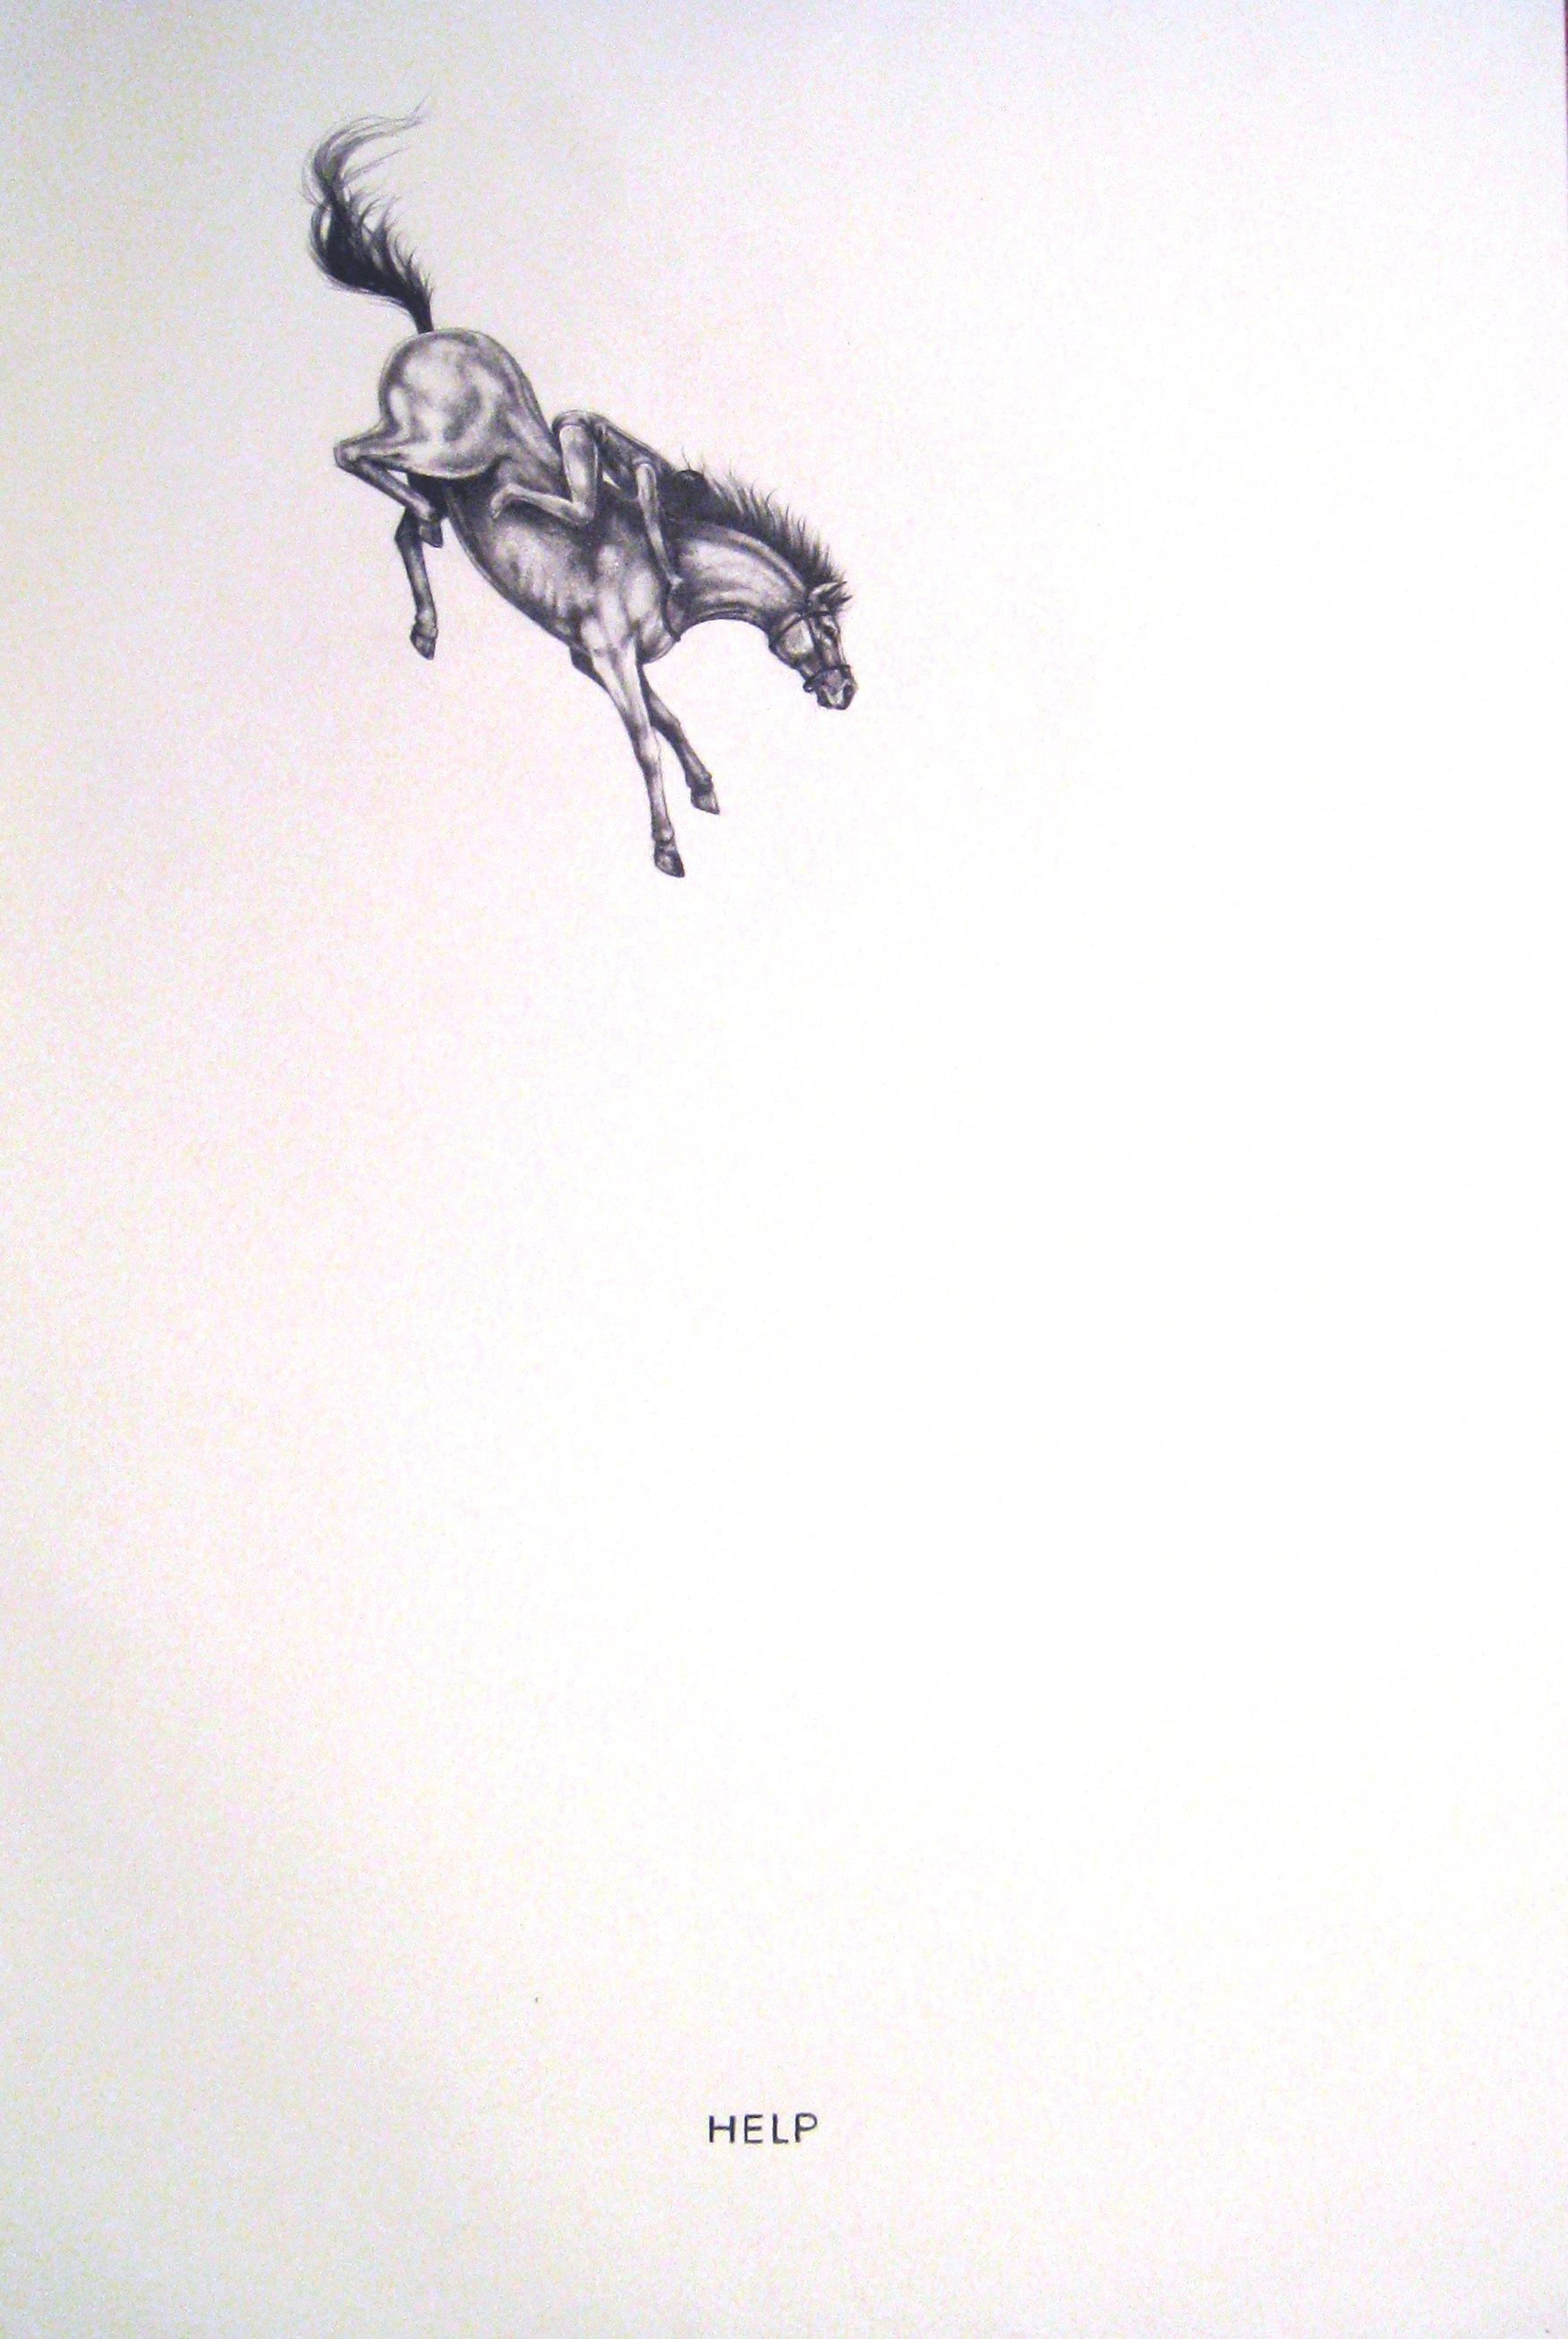 """Contingency 7(Leap), 2014  Graphite on Paper  30x44"""""""